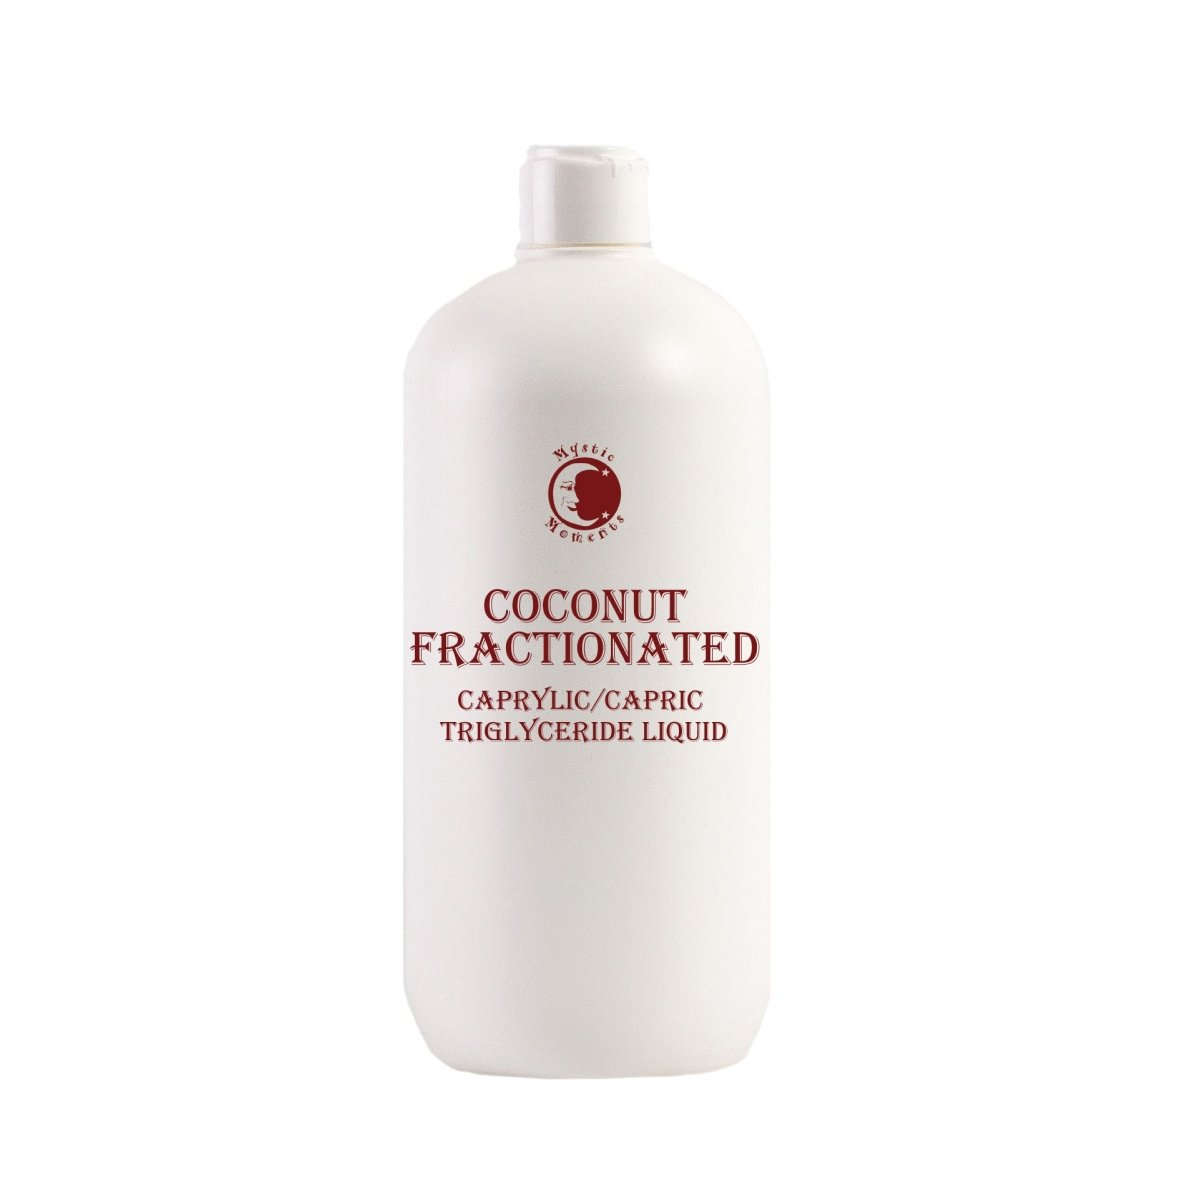 Coconut Fractionated Carrier Oil - Mystic Moments UK